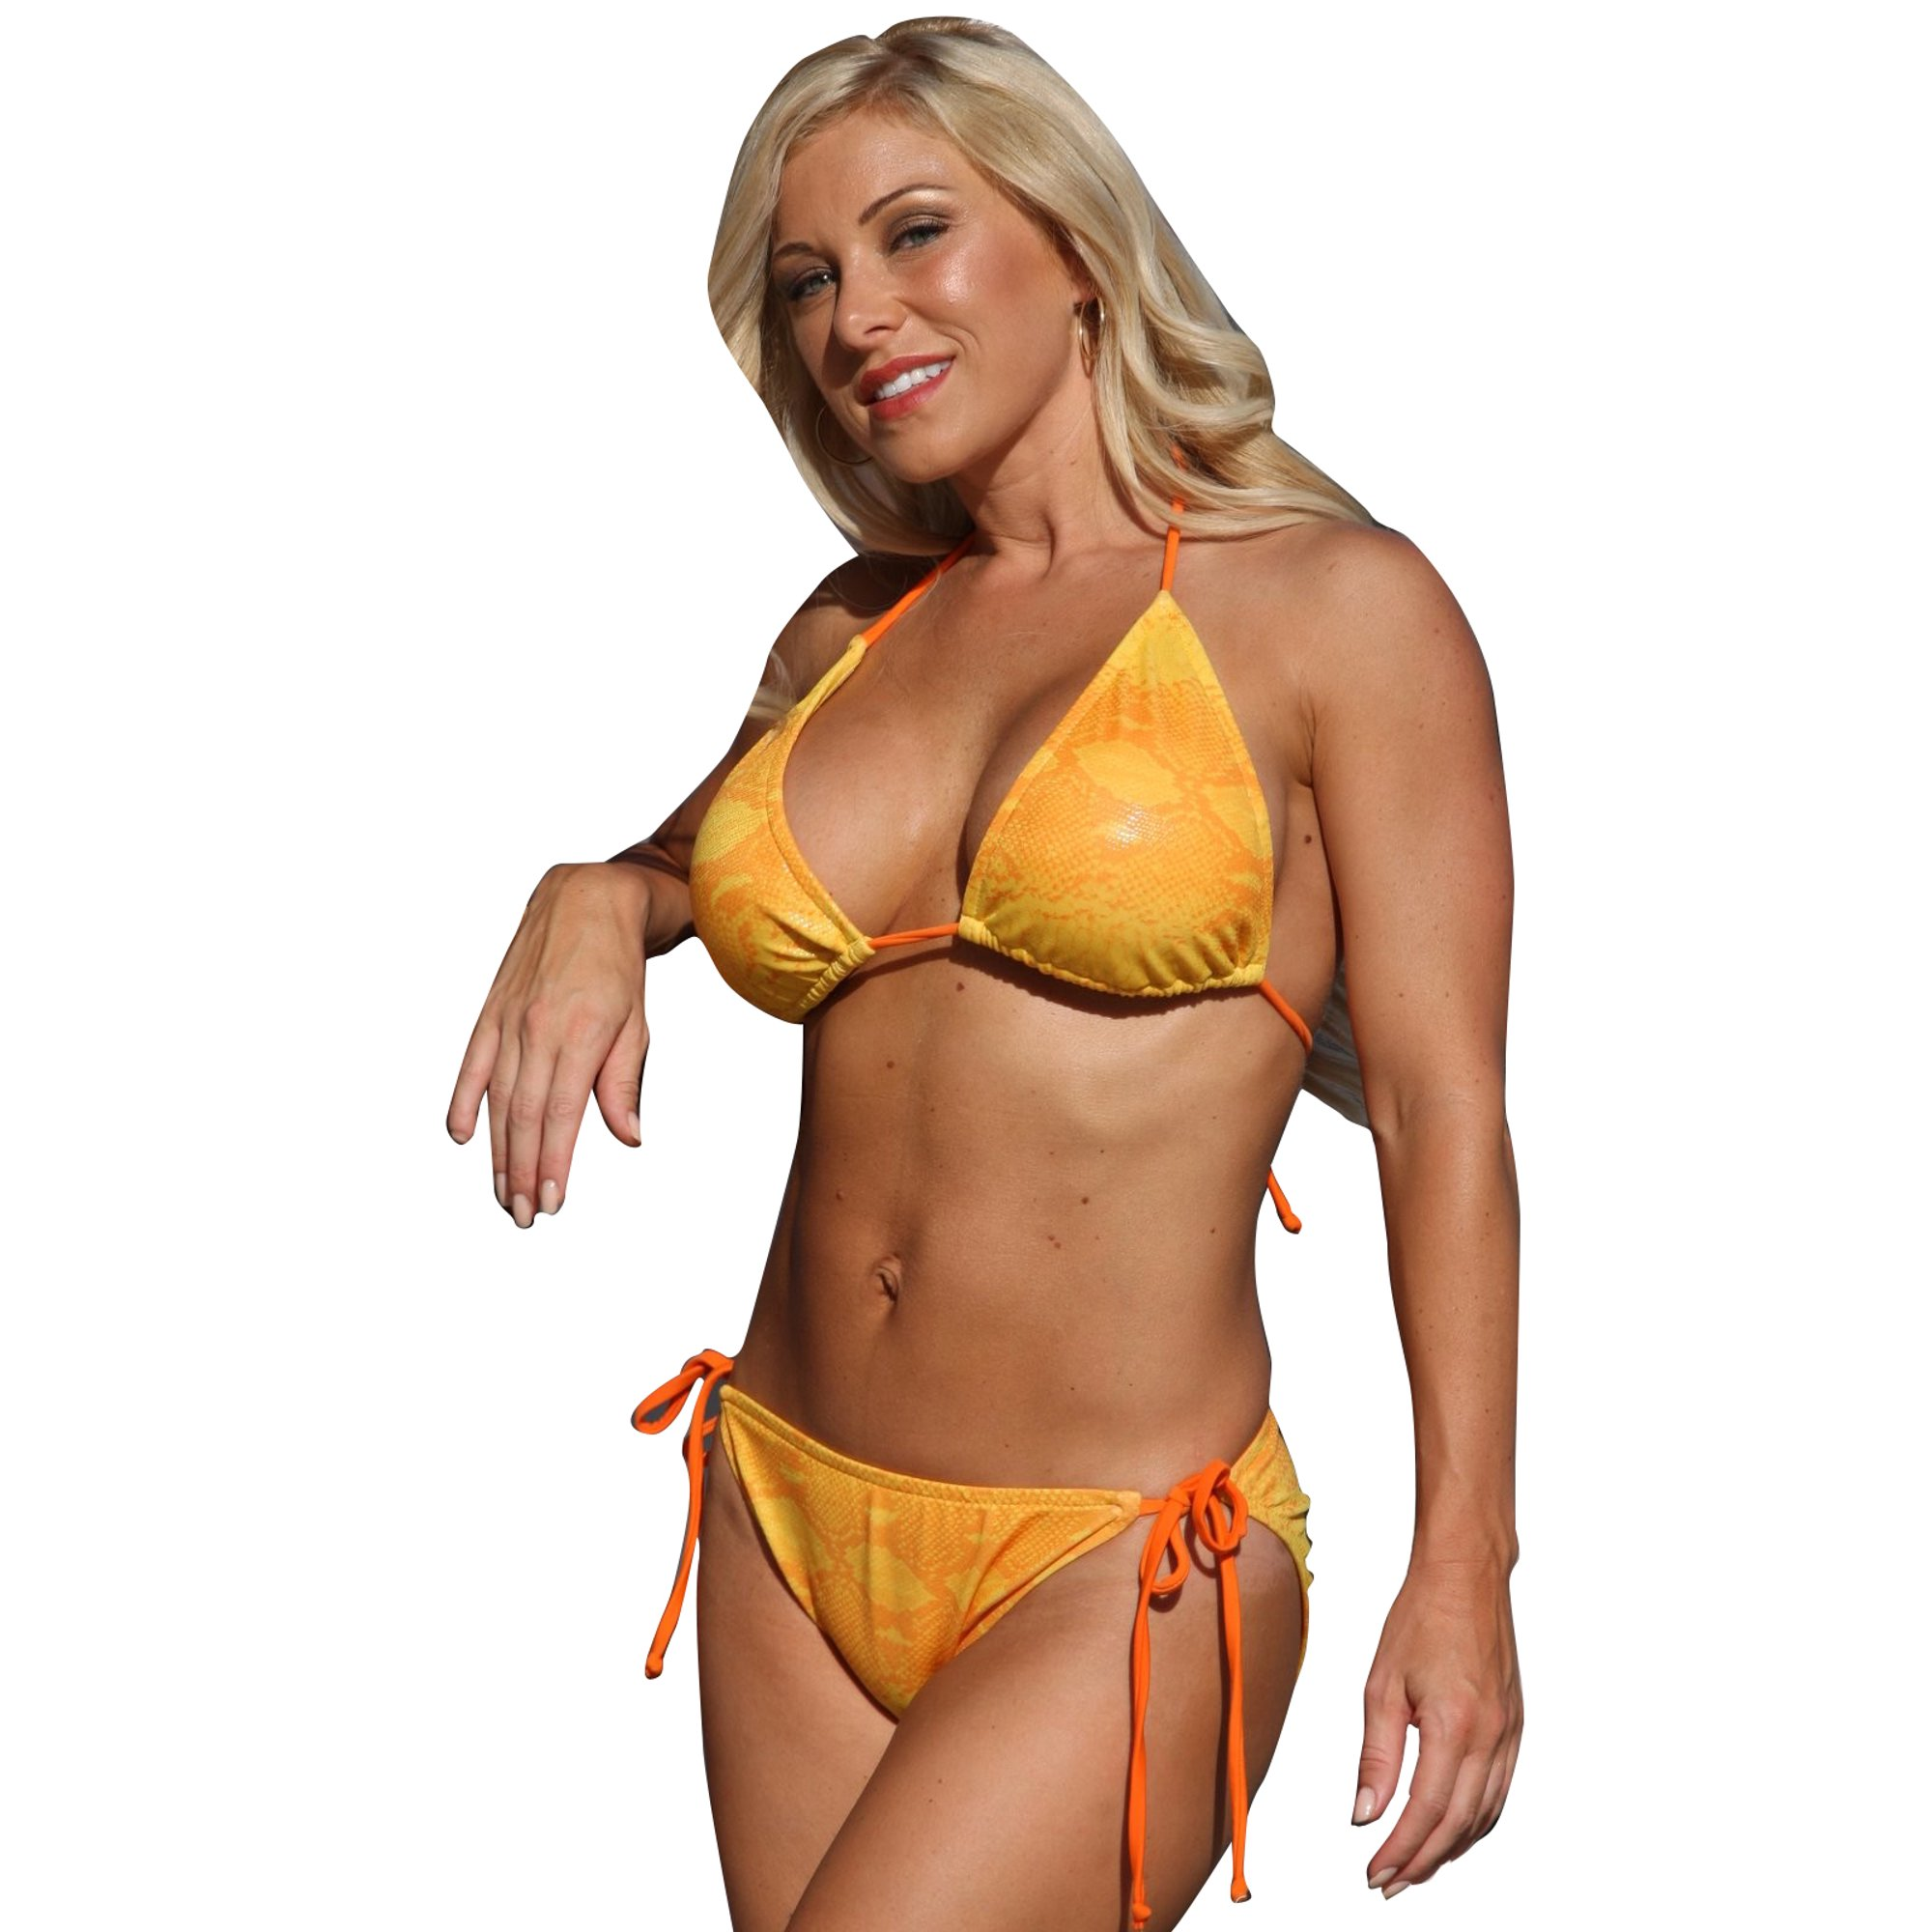 be7495c6e65 UjENA Panama Viper Bikini - Mix and Match Sizes